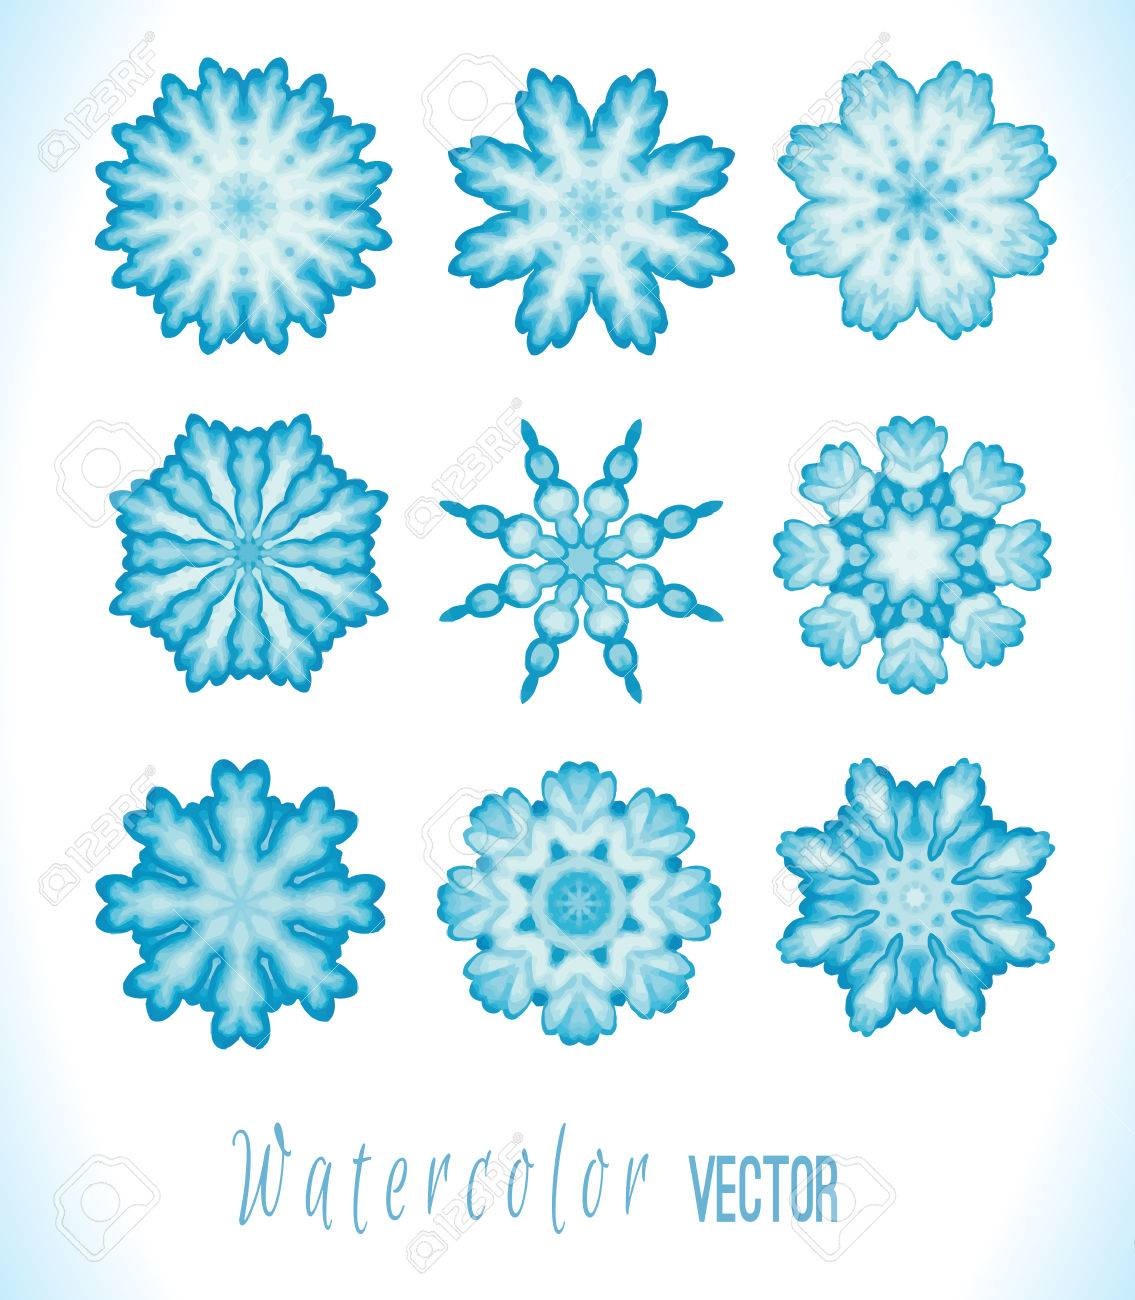 set of snowflakes fractals or mandalas great for christmas or